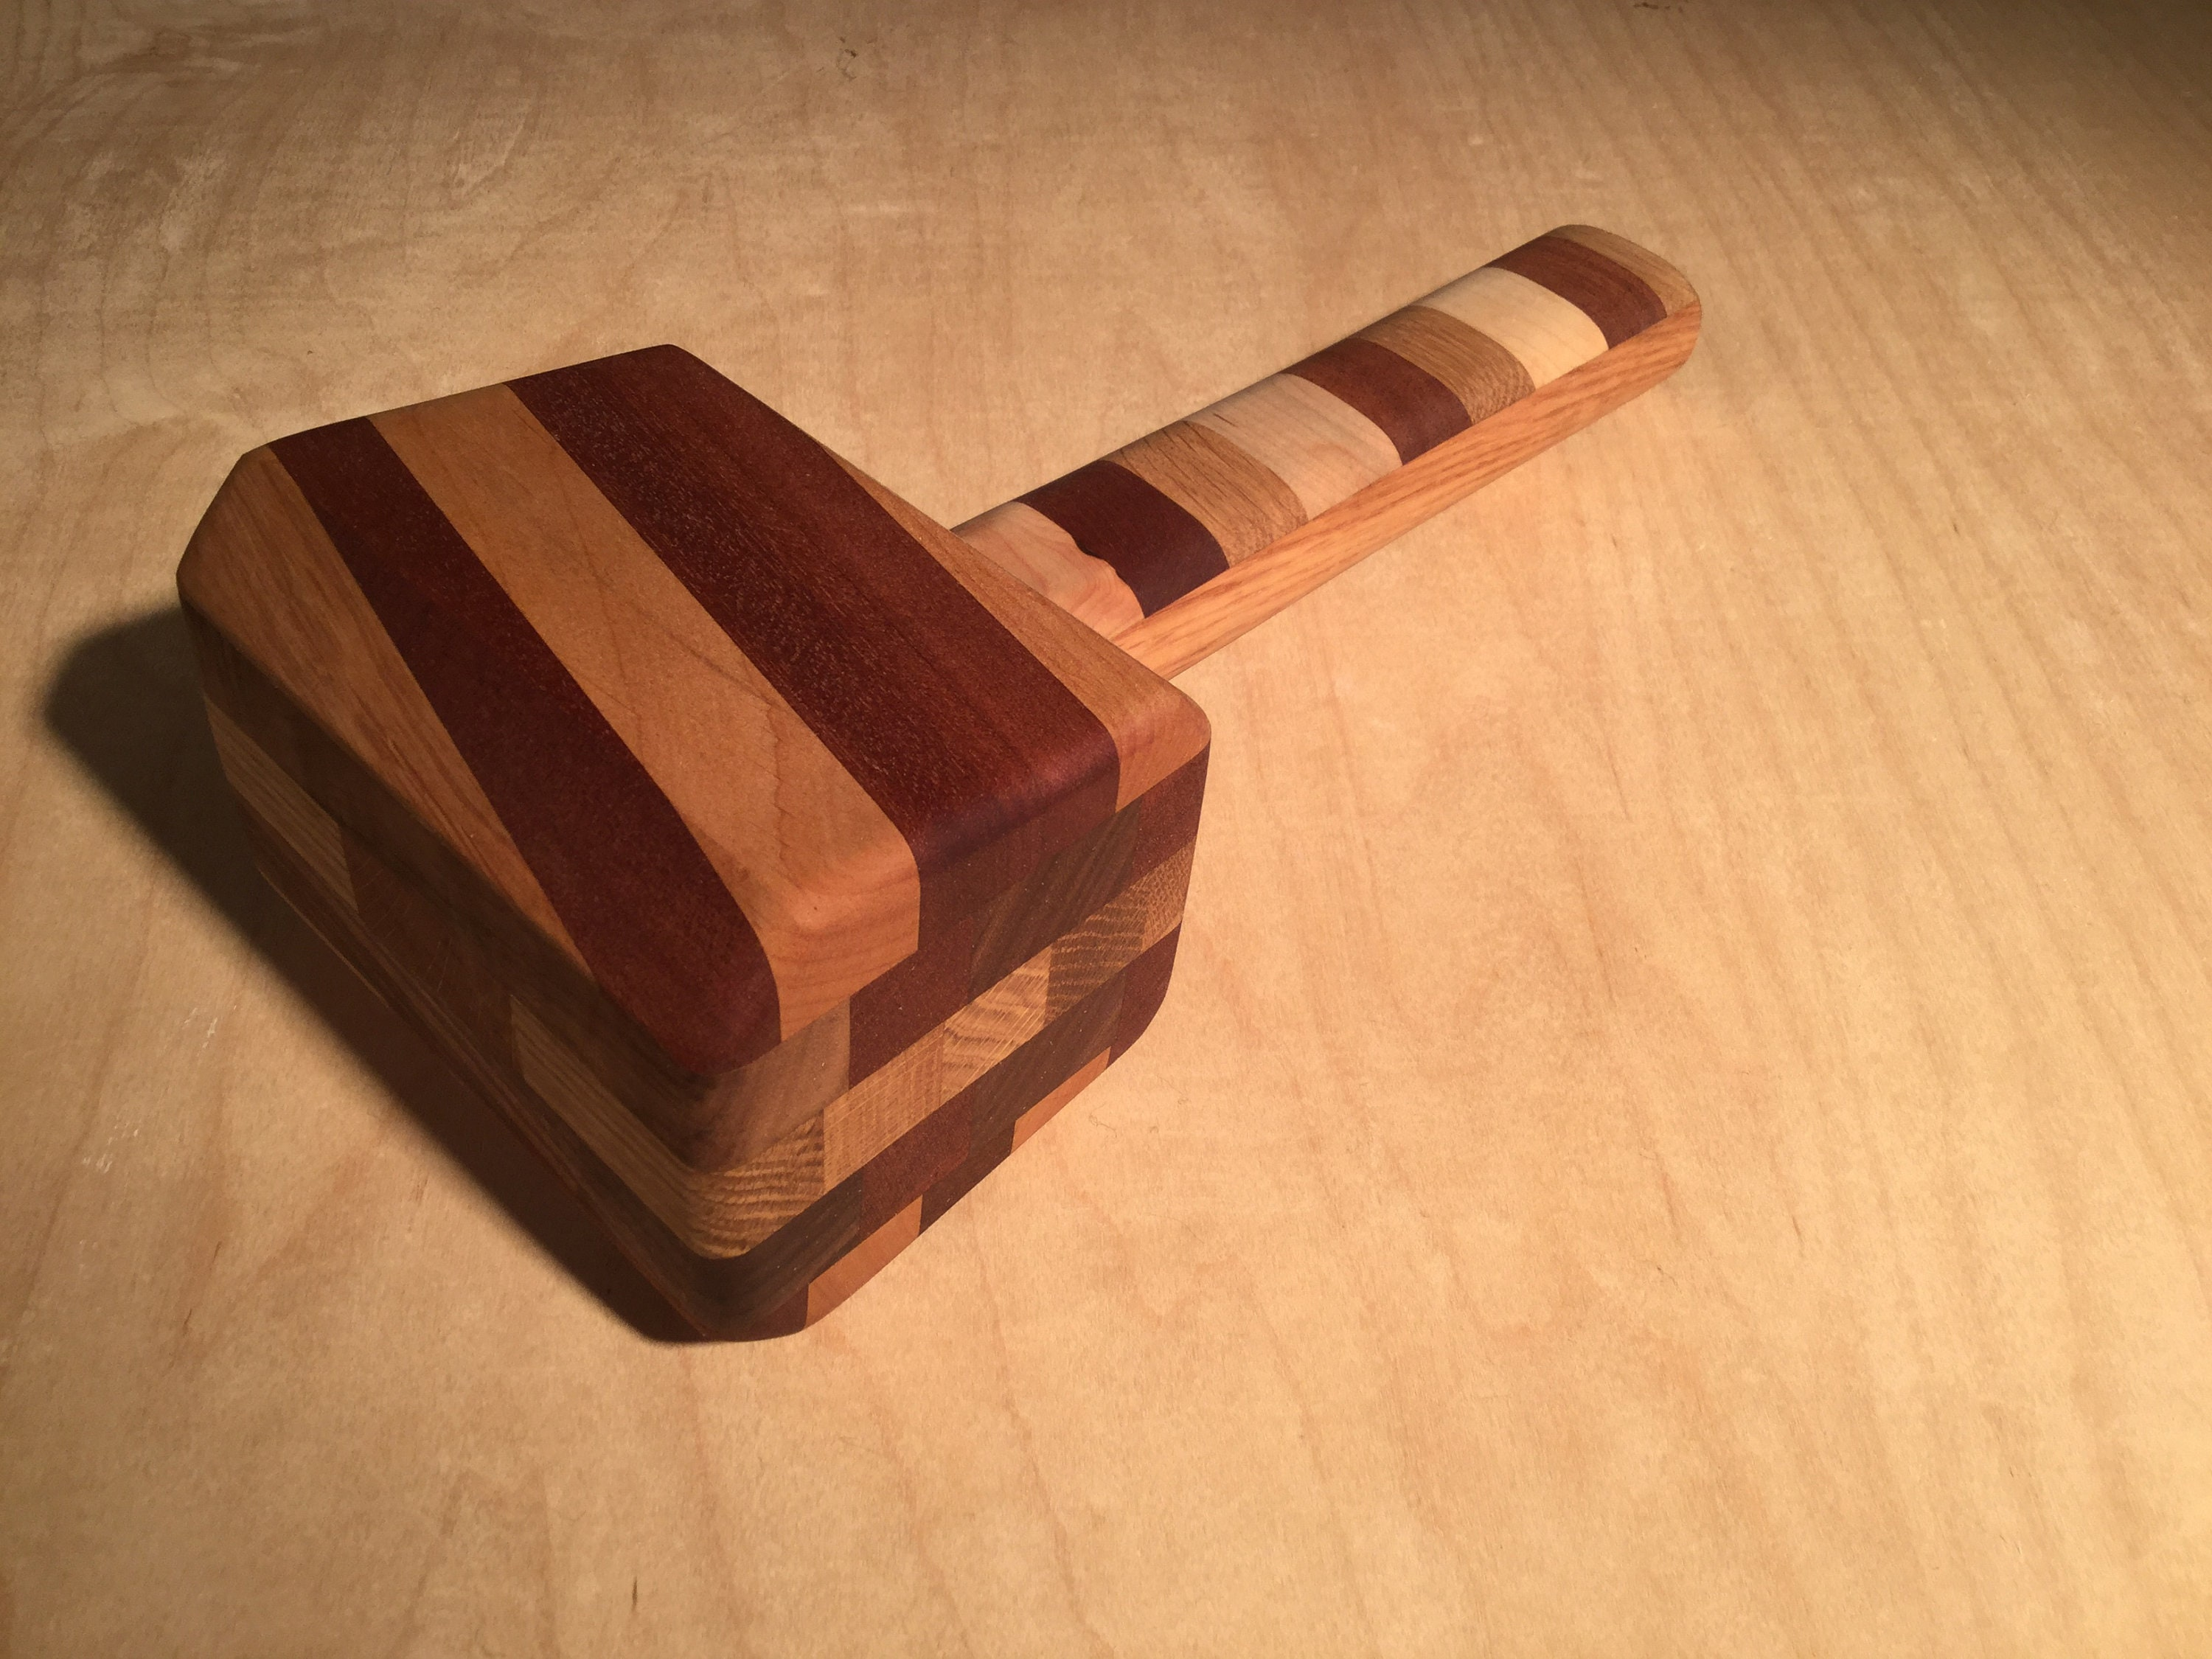 Wooden Mallet Carpentry Hand Tools Woodworking Gifts Hammer Handmade